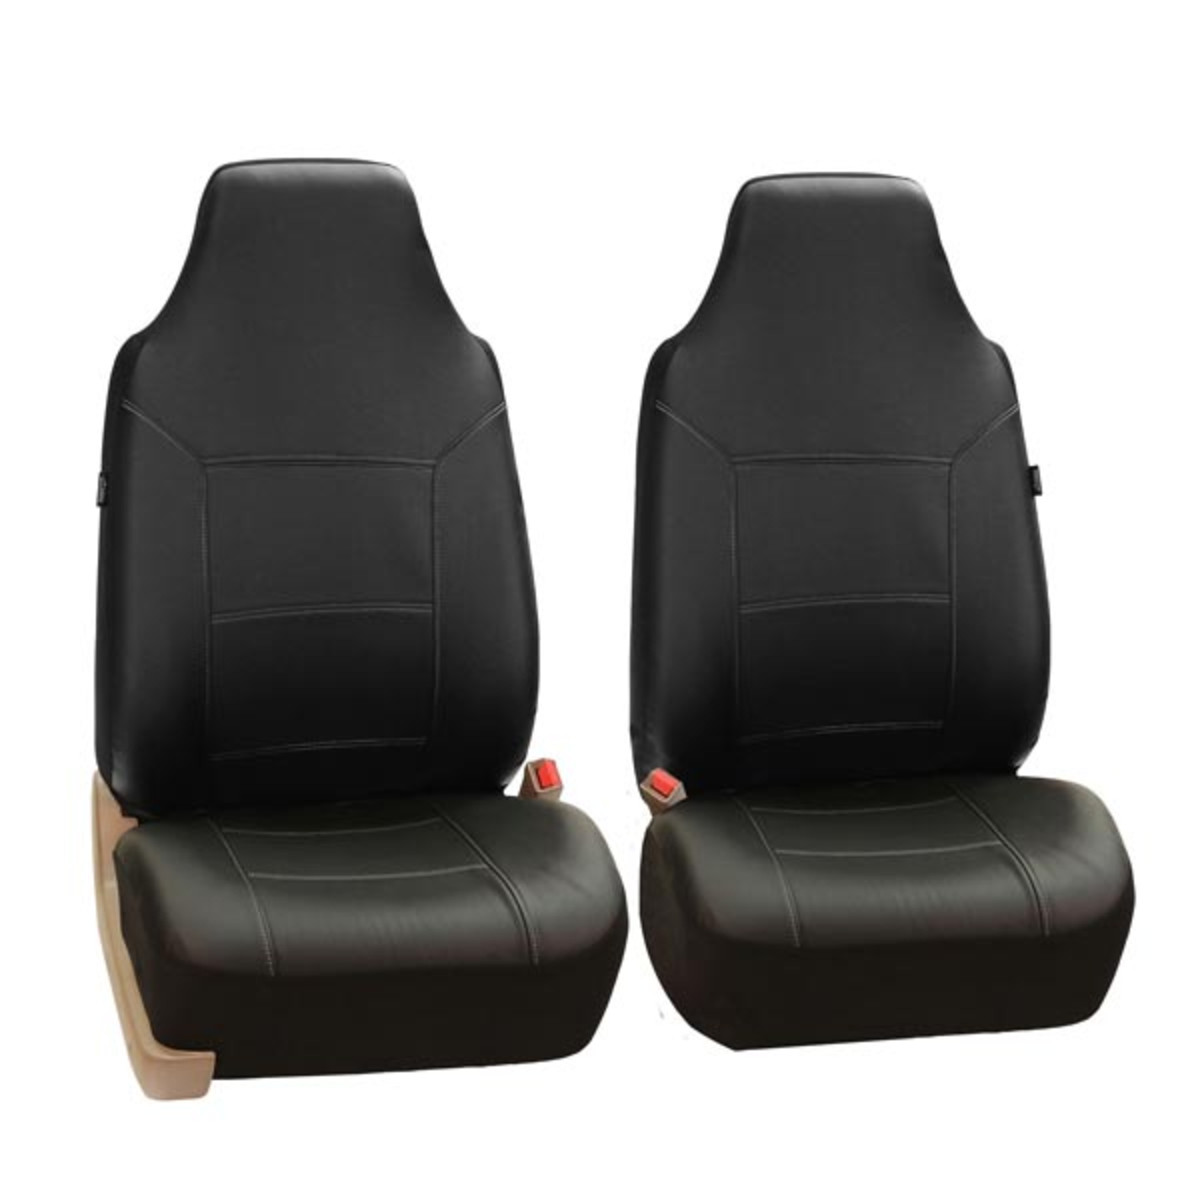 88-PU103102_black seat cover 1